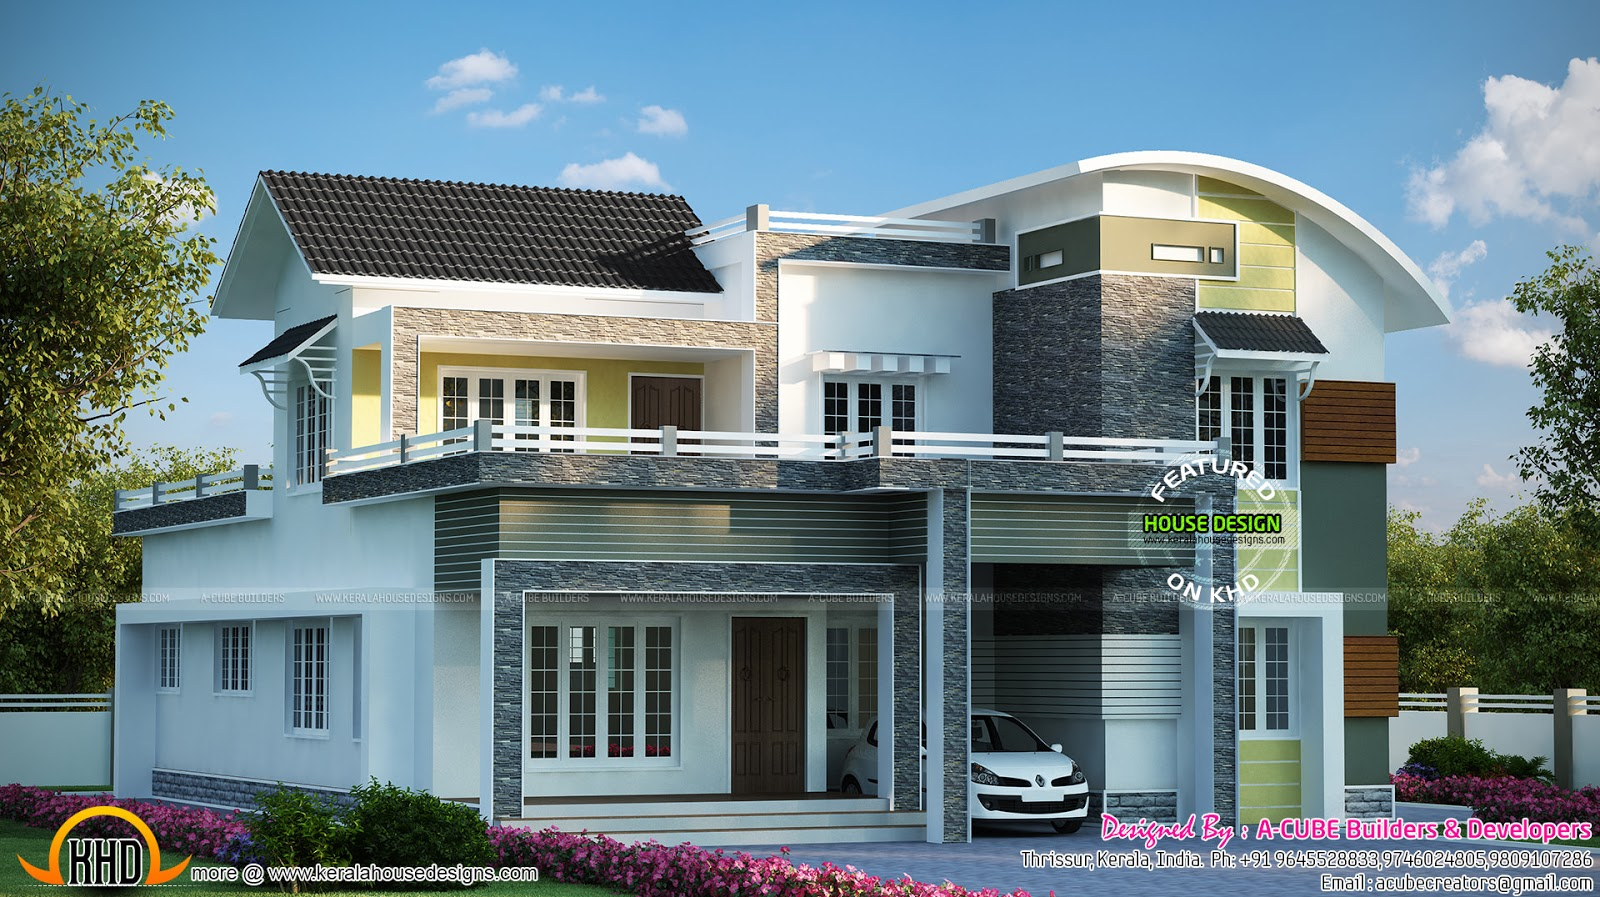 curved-roof-mix-home Curved Roof House Design Kerala Home on modern garage with shed roof, house plans with gable roof, slate gray metal roof, ranch style house with hip roof, house with balcony roof, house plans with sloping roof, house with pool on roof, garage exterior design with metal roof, house with green metal roof, build a cupola roof, home roof, modern house roof,